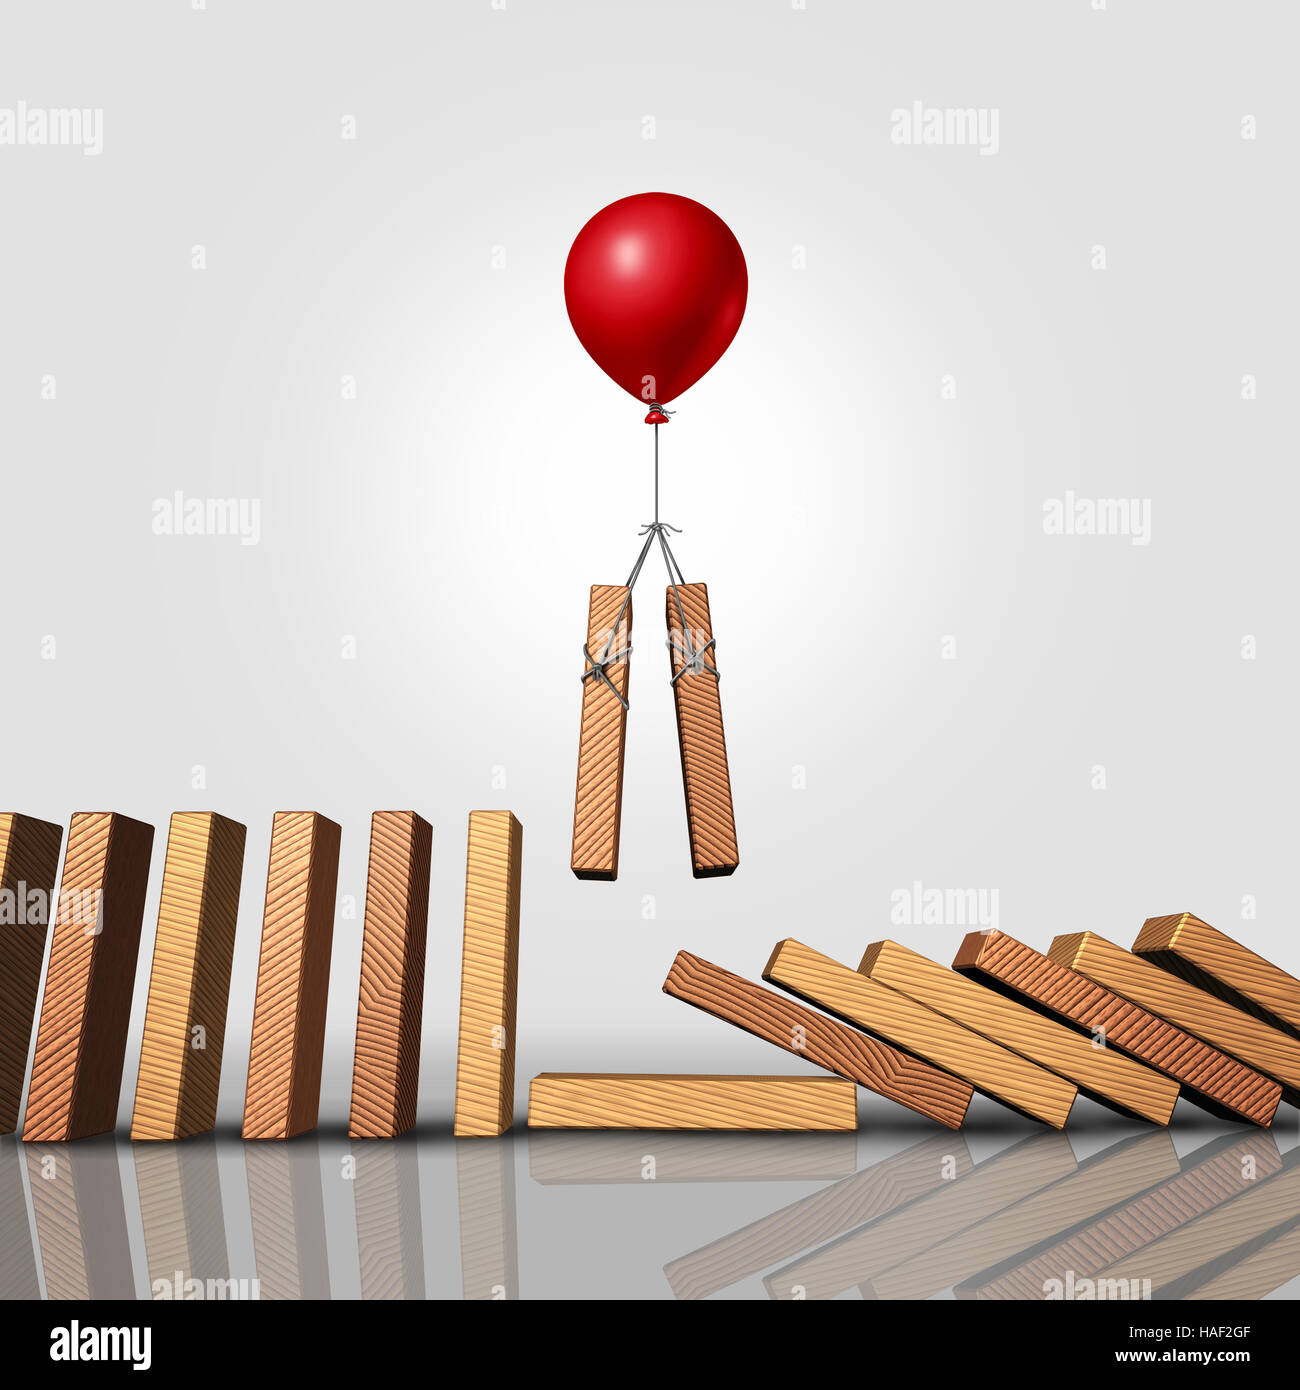 Downsizing business strategy as a balloon lifting up a pair of domino pieces allowing the gap to stop the falling - Stock Image